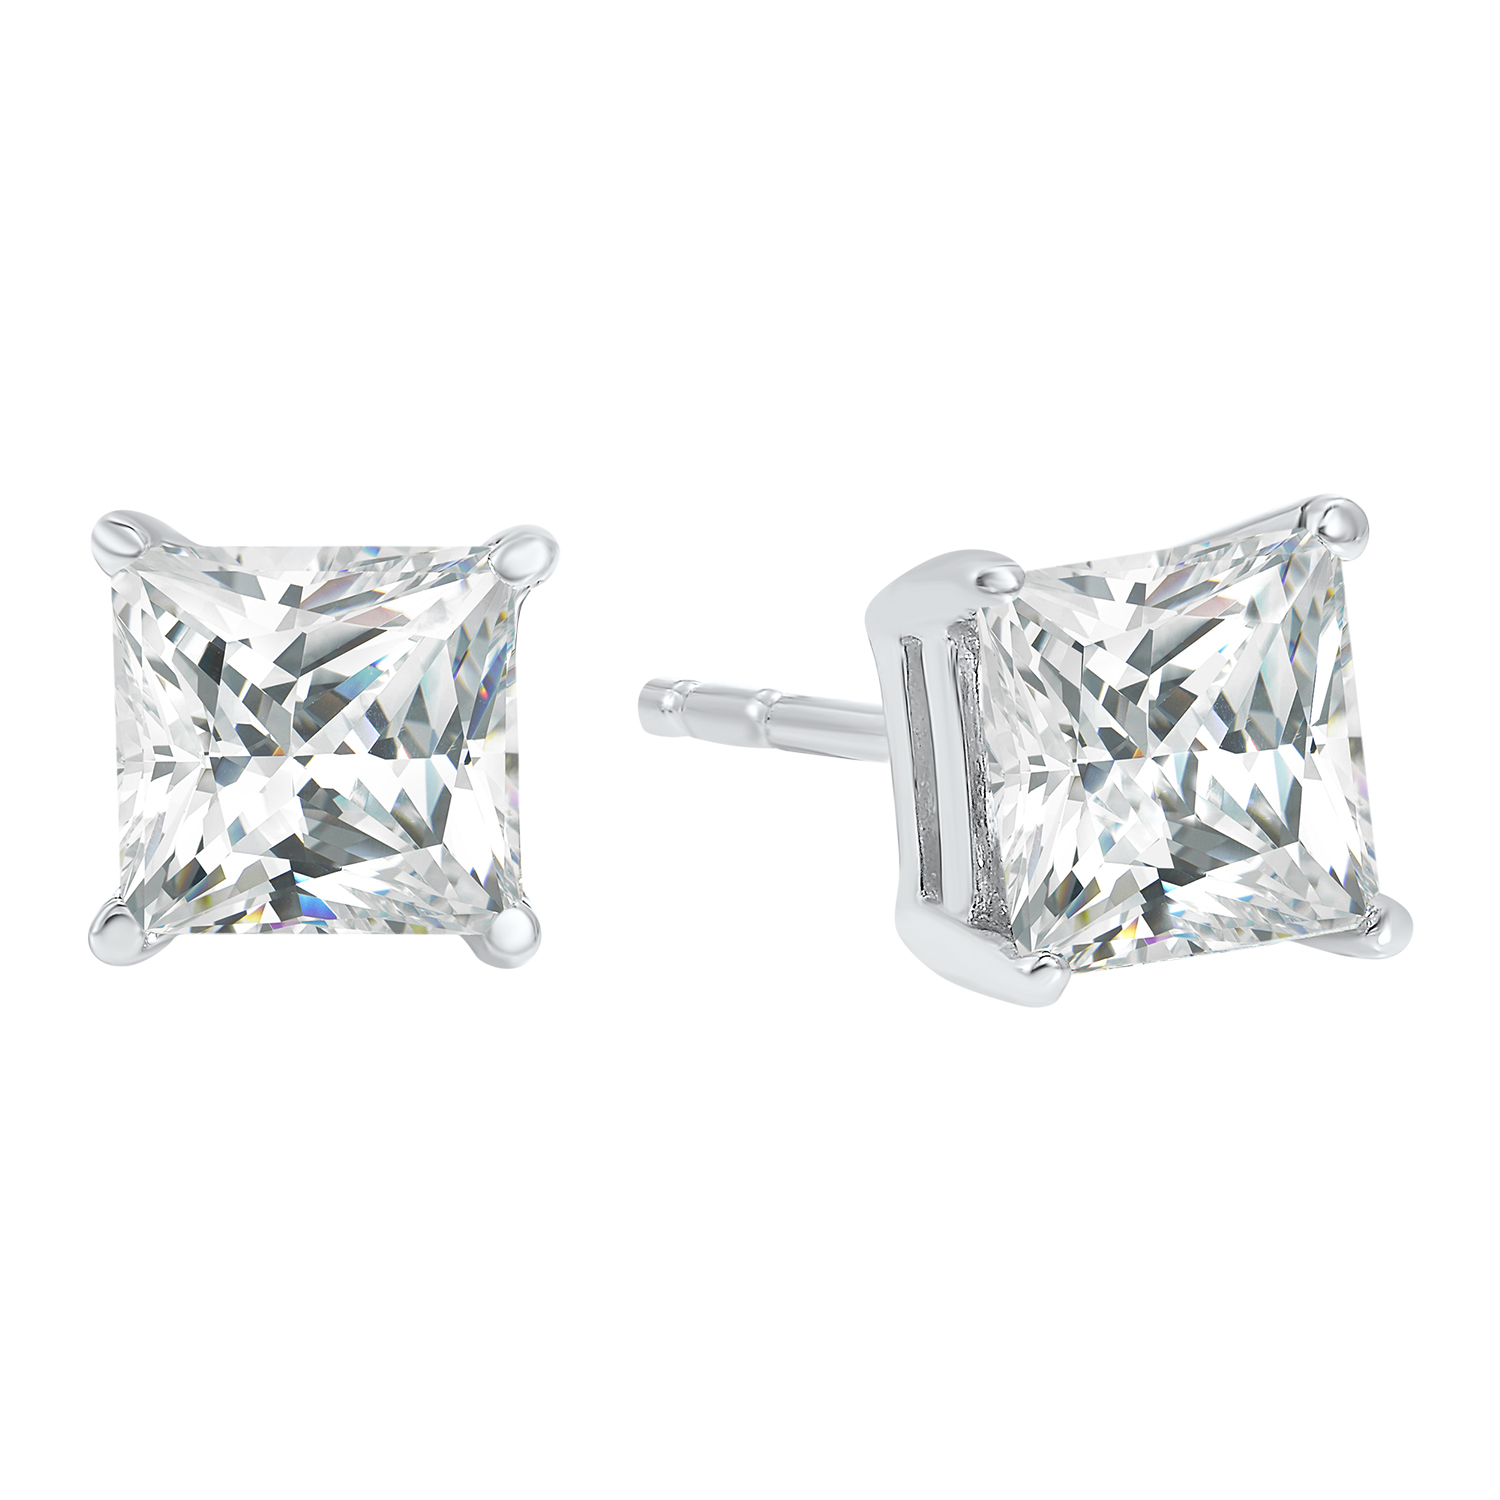 Princess Cut Diamond Studs in 14K White Gold (2 ct. tw.) I1 - G/H Moseley Diamond Showcase Inc Columbia, SC